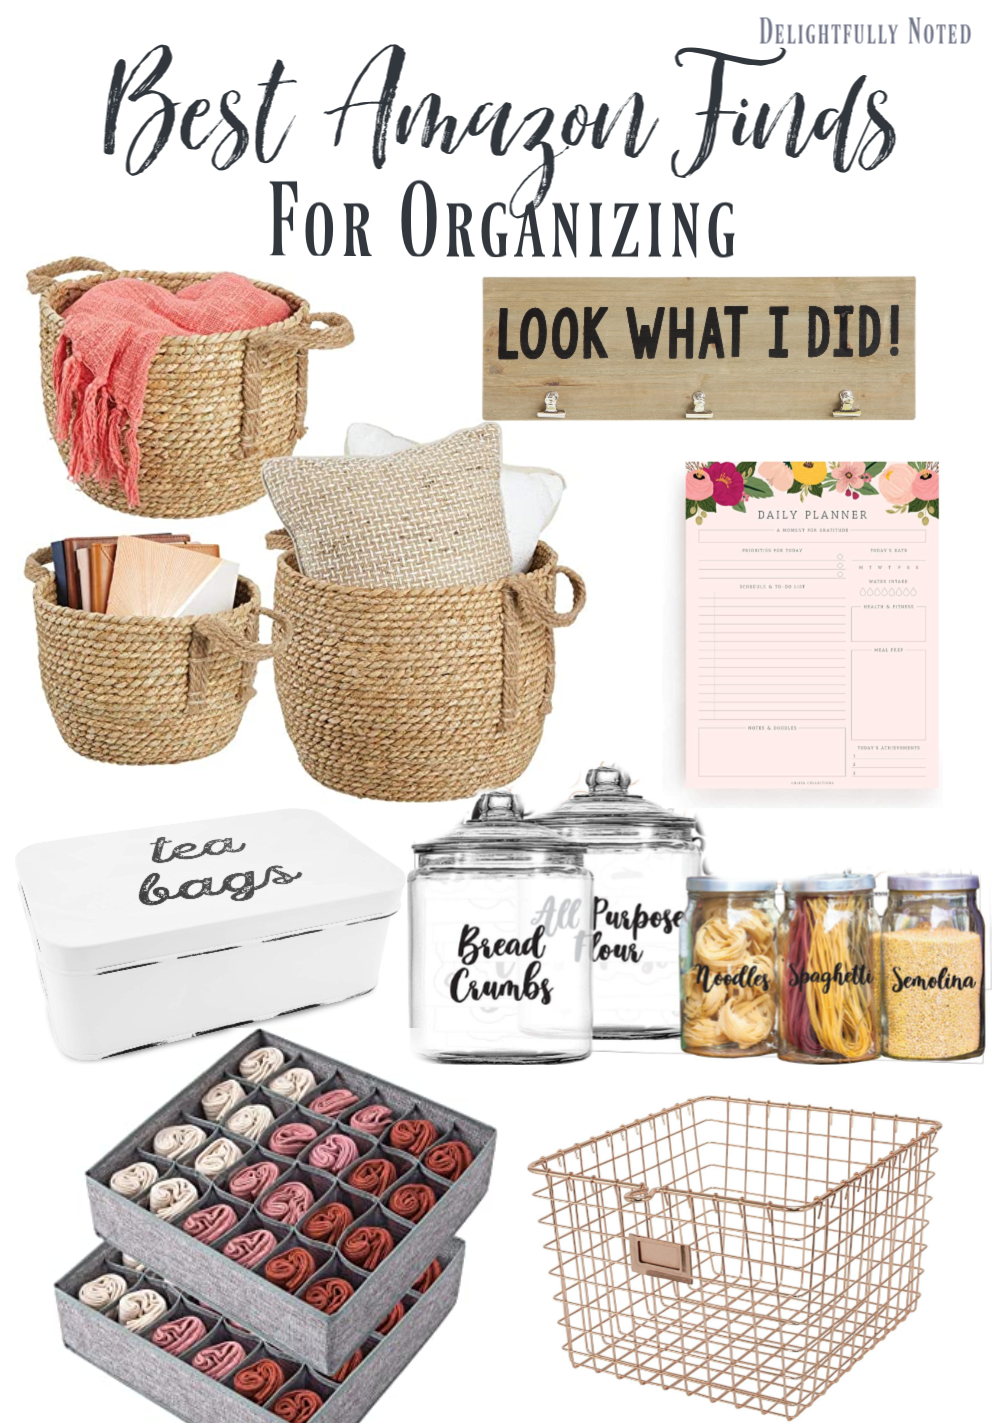 Cleaning and Organizing to Cope: Amazon Organizational Finds